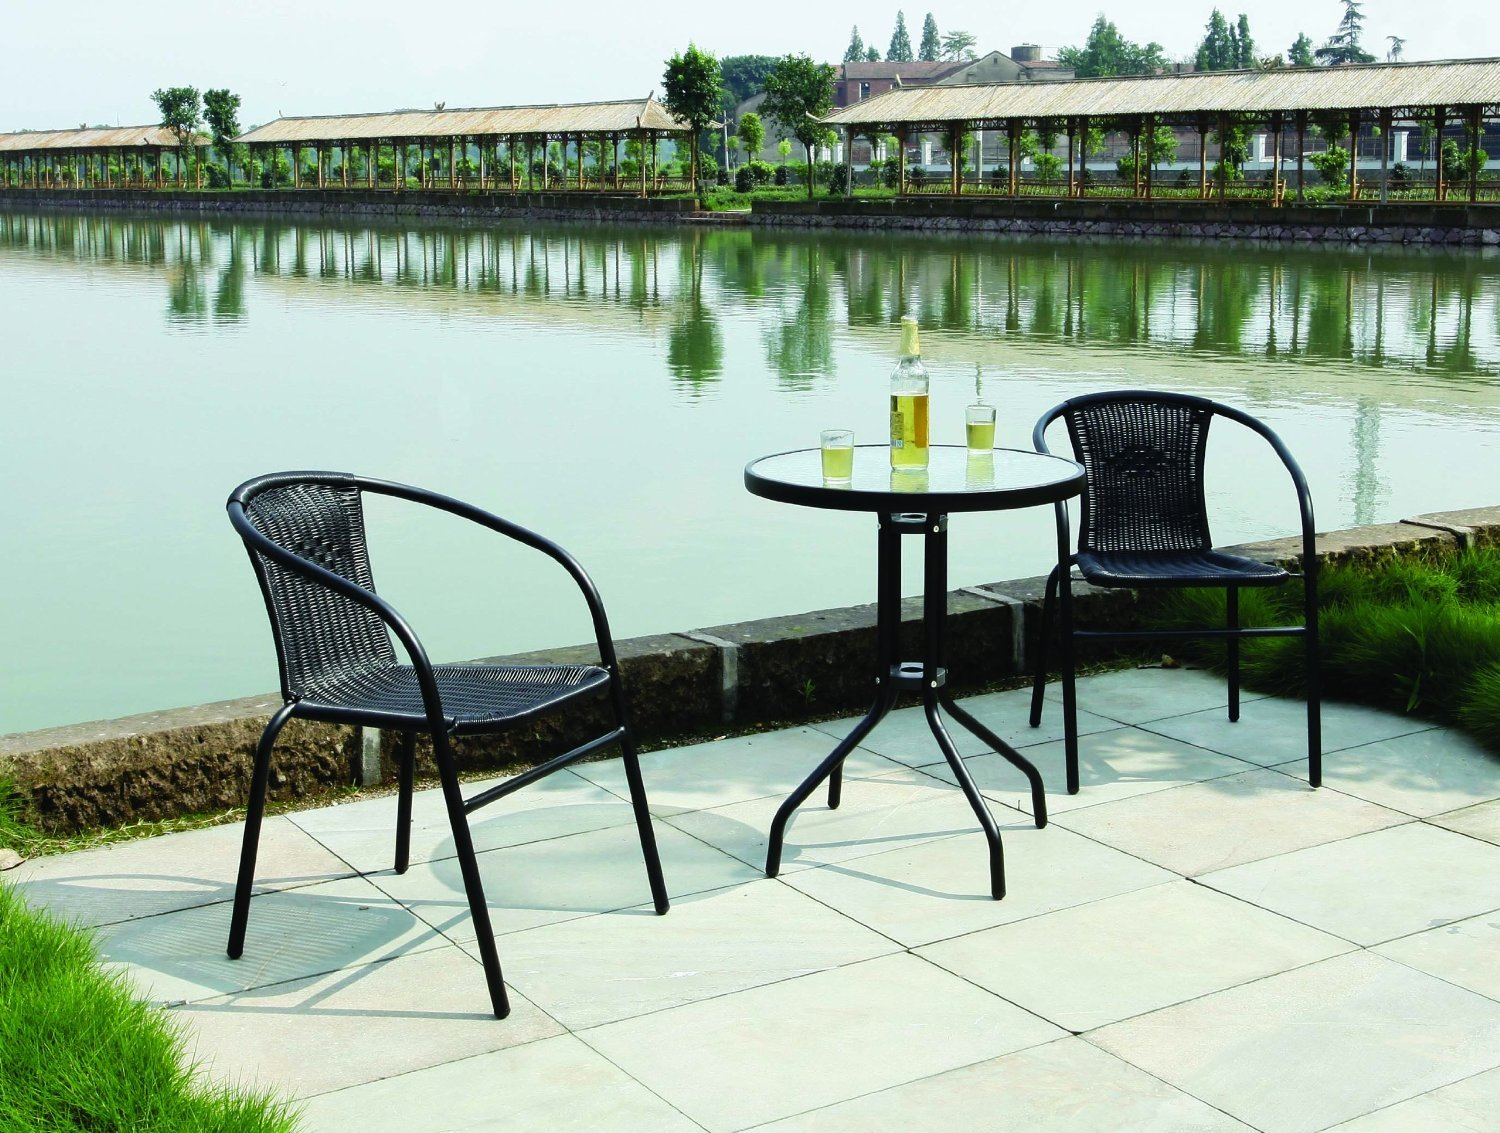 Garden Patio All Weather Black Wicker 3 Piece Bistro Set Patio Outdoor  Furniture: Amazon.co.uk: Garden U0026 Outdoors